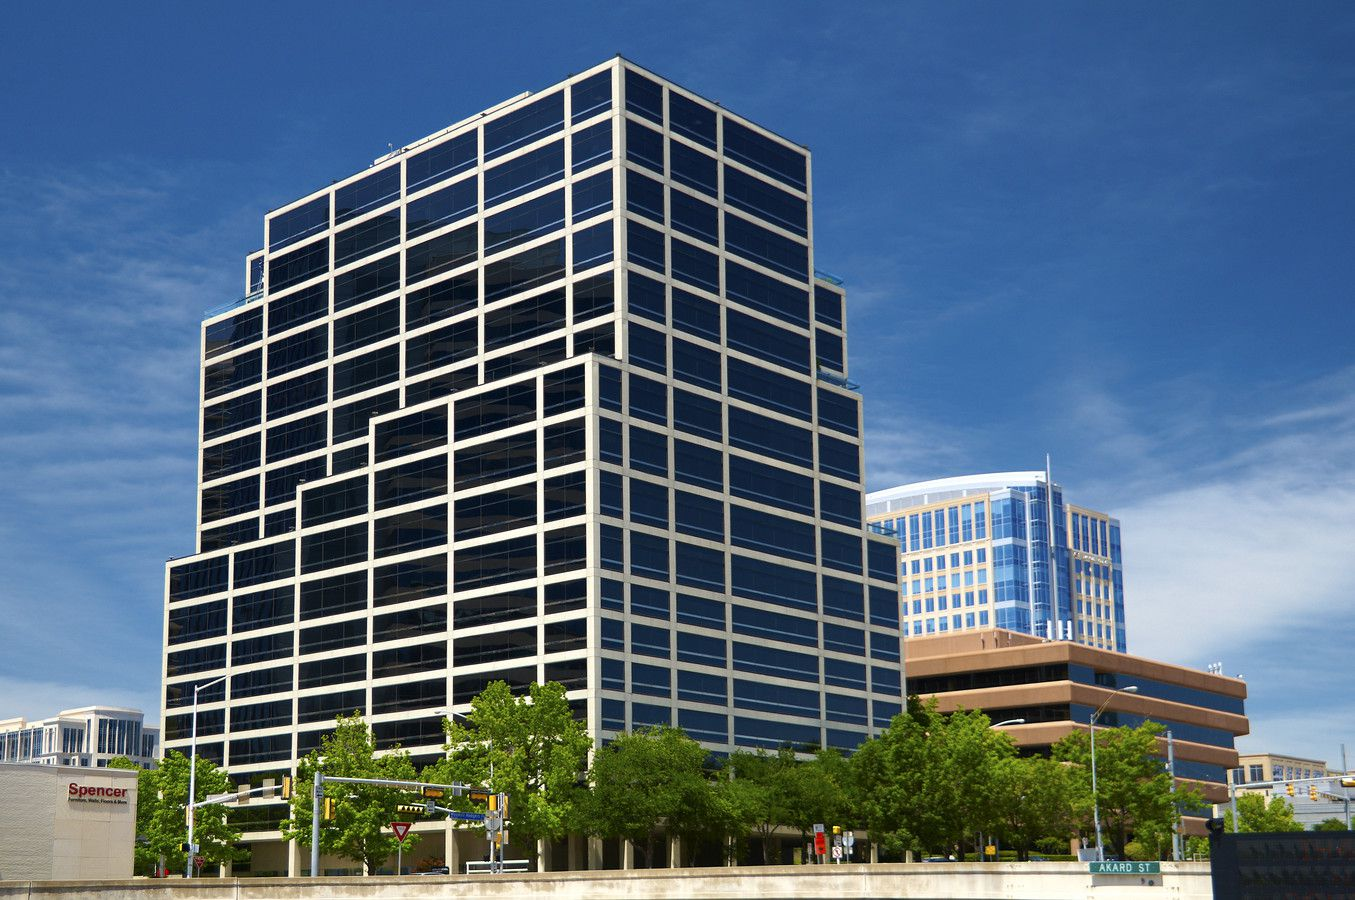 The Advancial Tower on Woodall Rodgers Freeway was built in 1984.